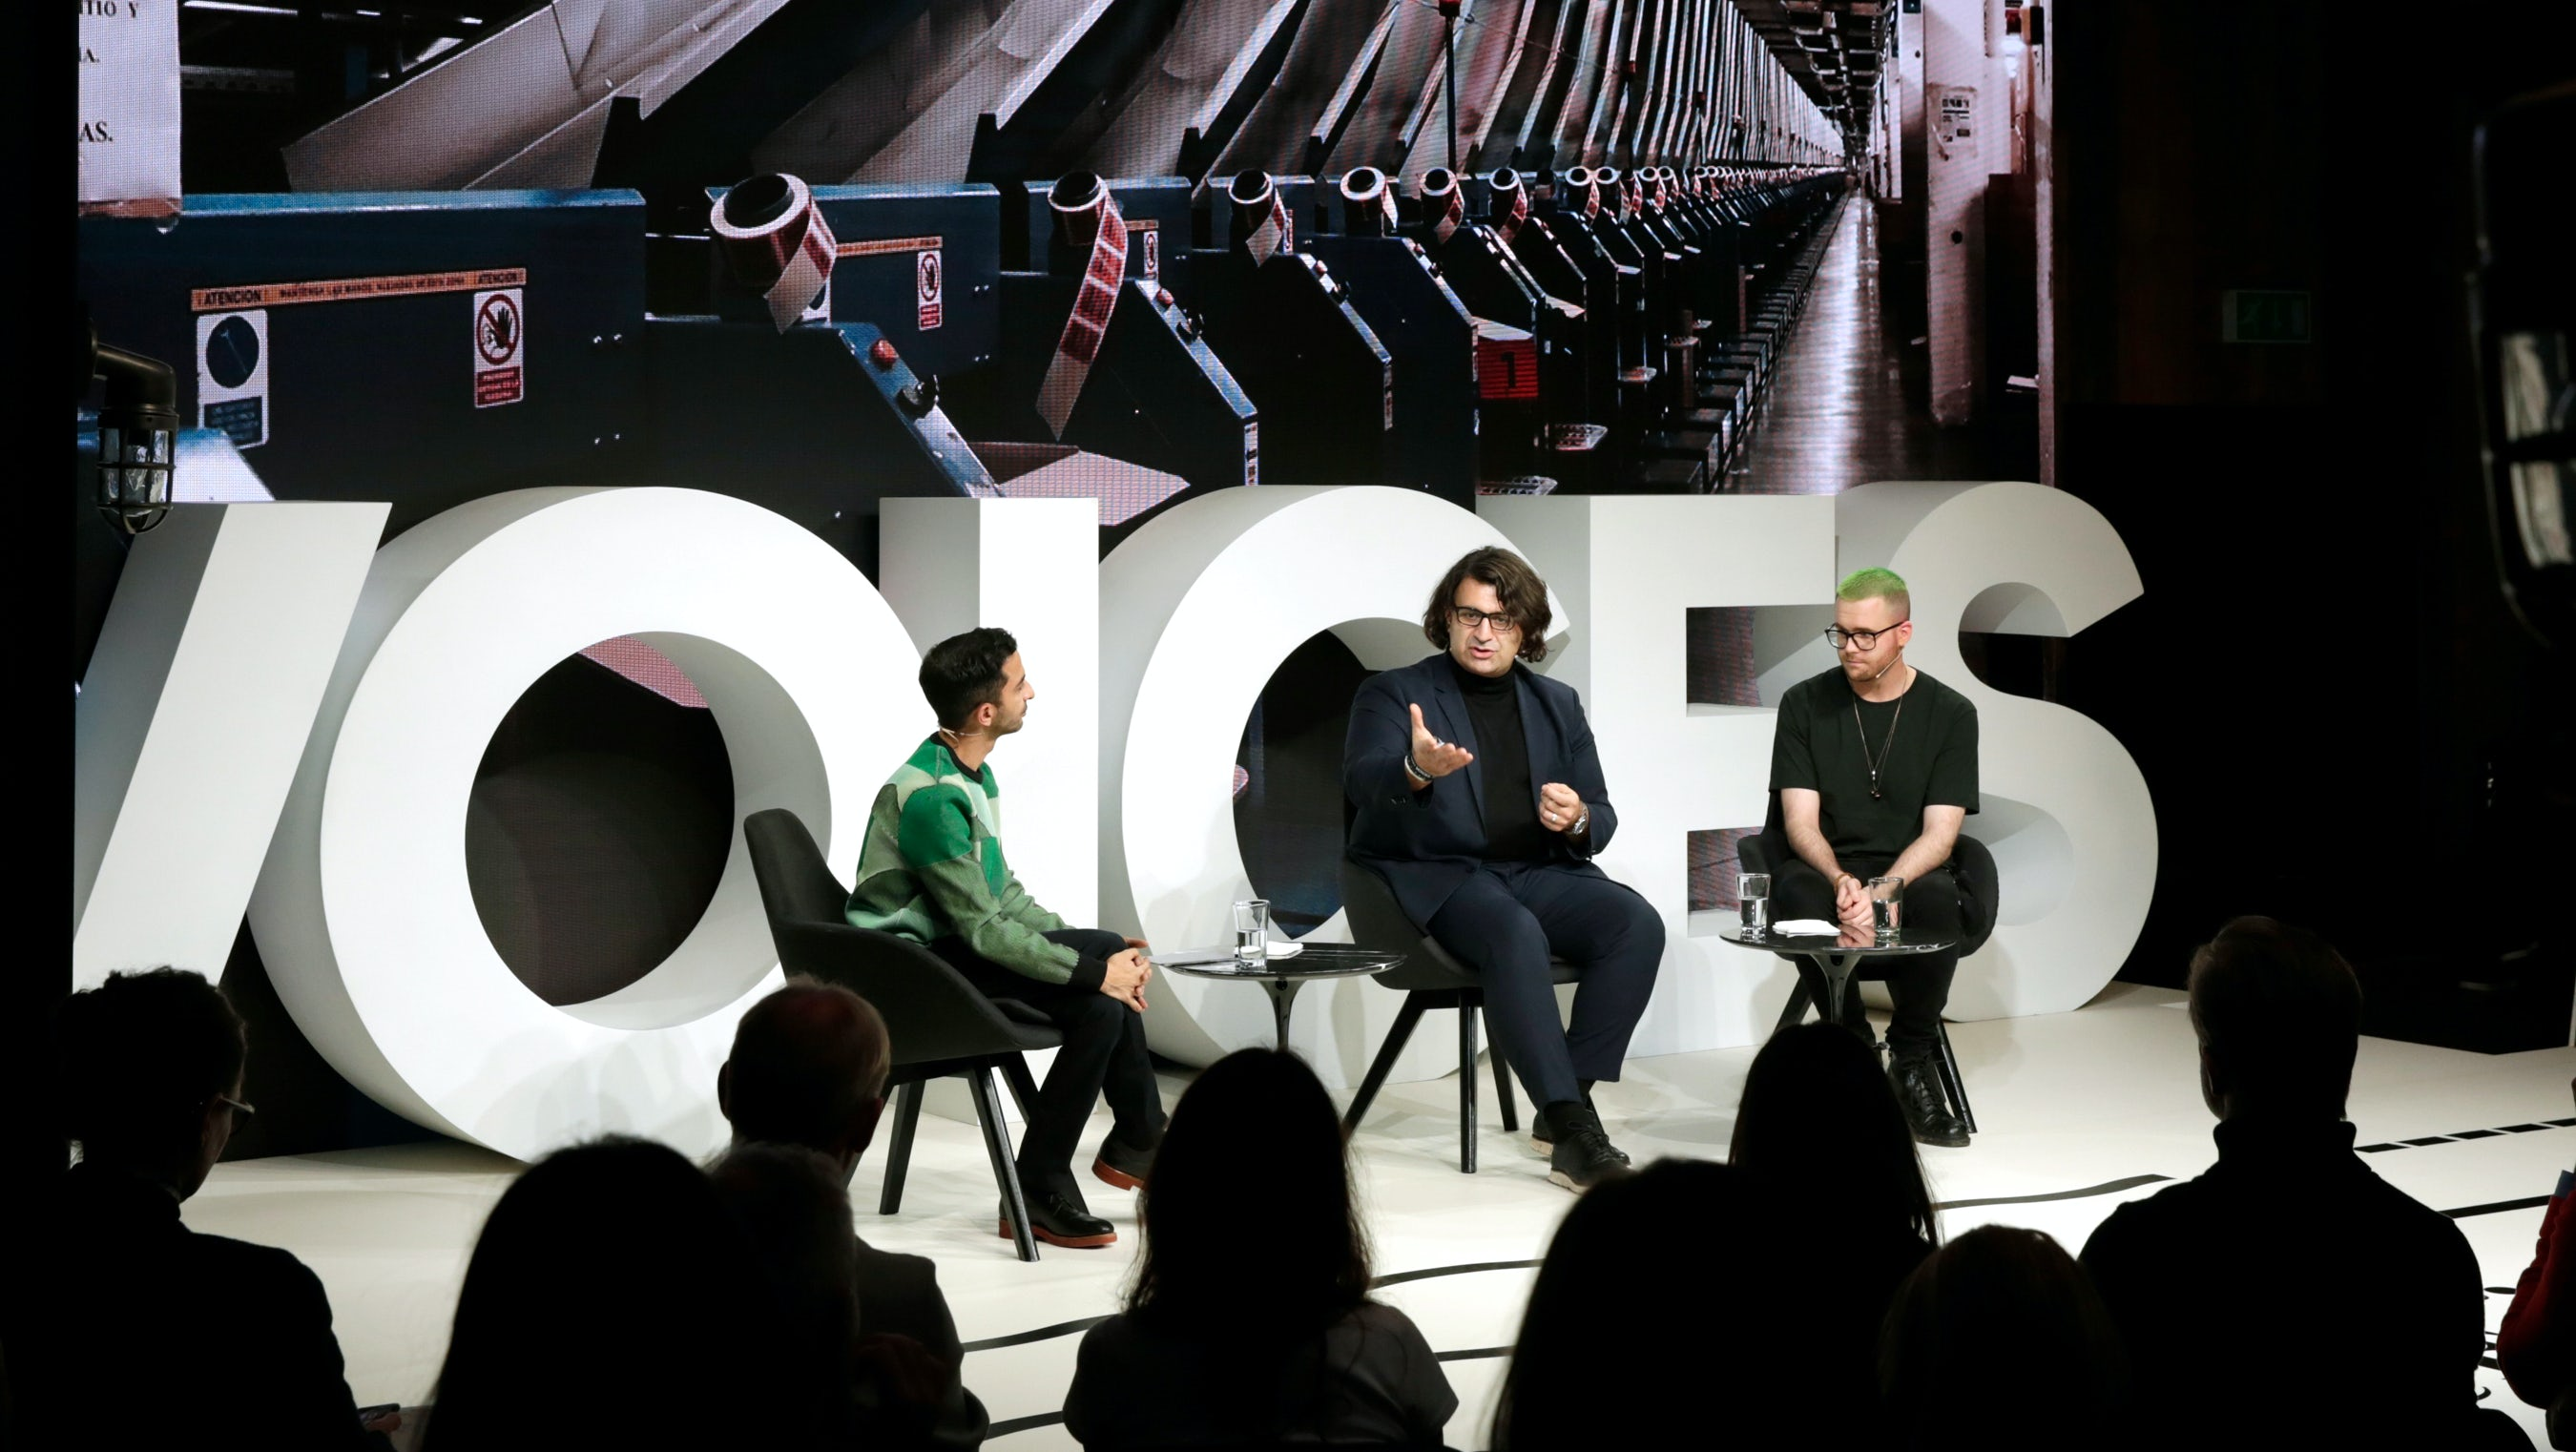 Left to right: Imran Amed, Arti Zeighami and Christopher Wylie | Source: Getty Images for The Business of Fashion